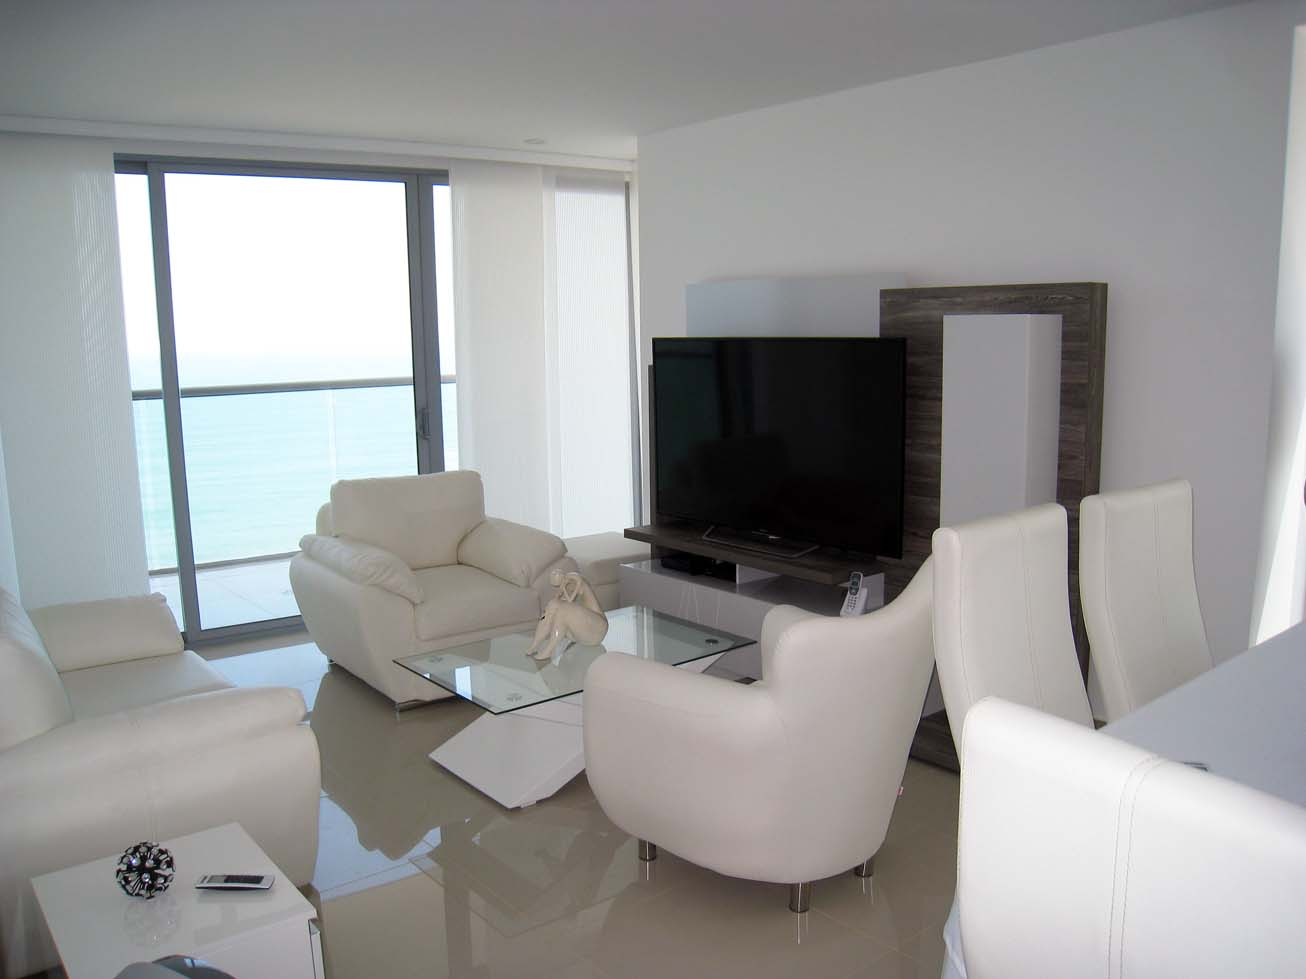 CARTAGENA - Bocagrande Beachfront - Beautiful New Apartment in Morros City